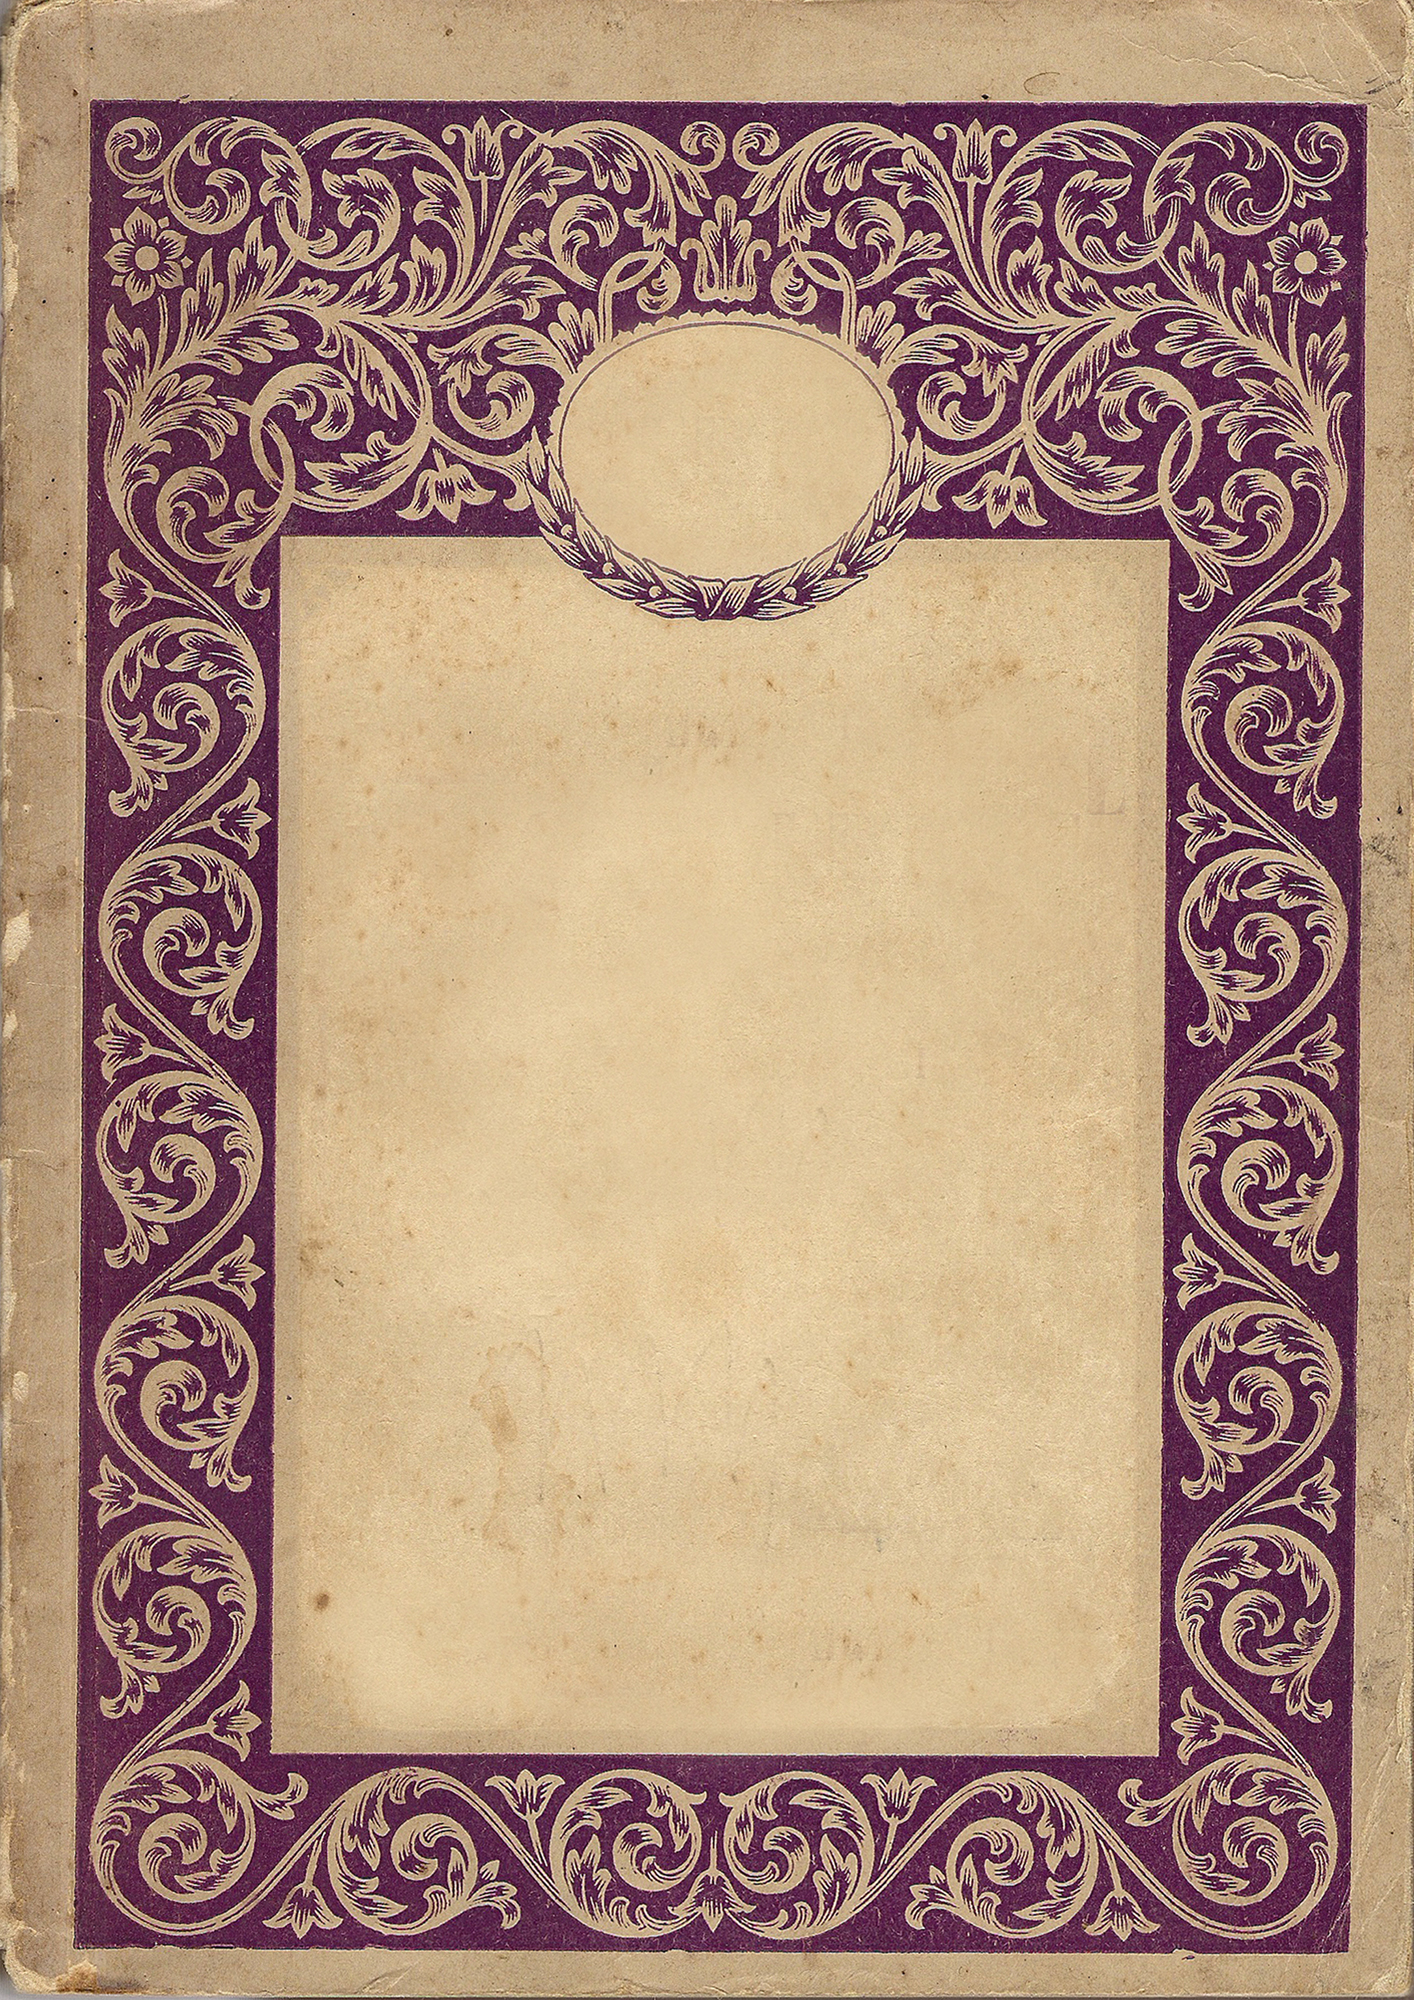 Old floral book cover